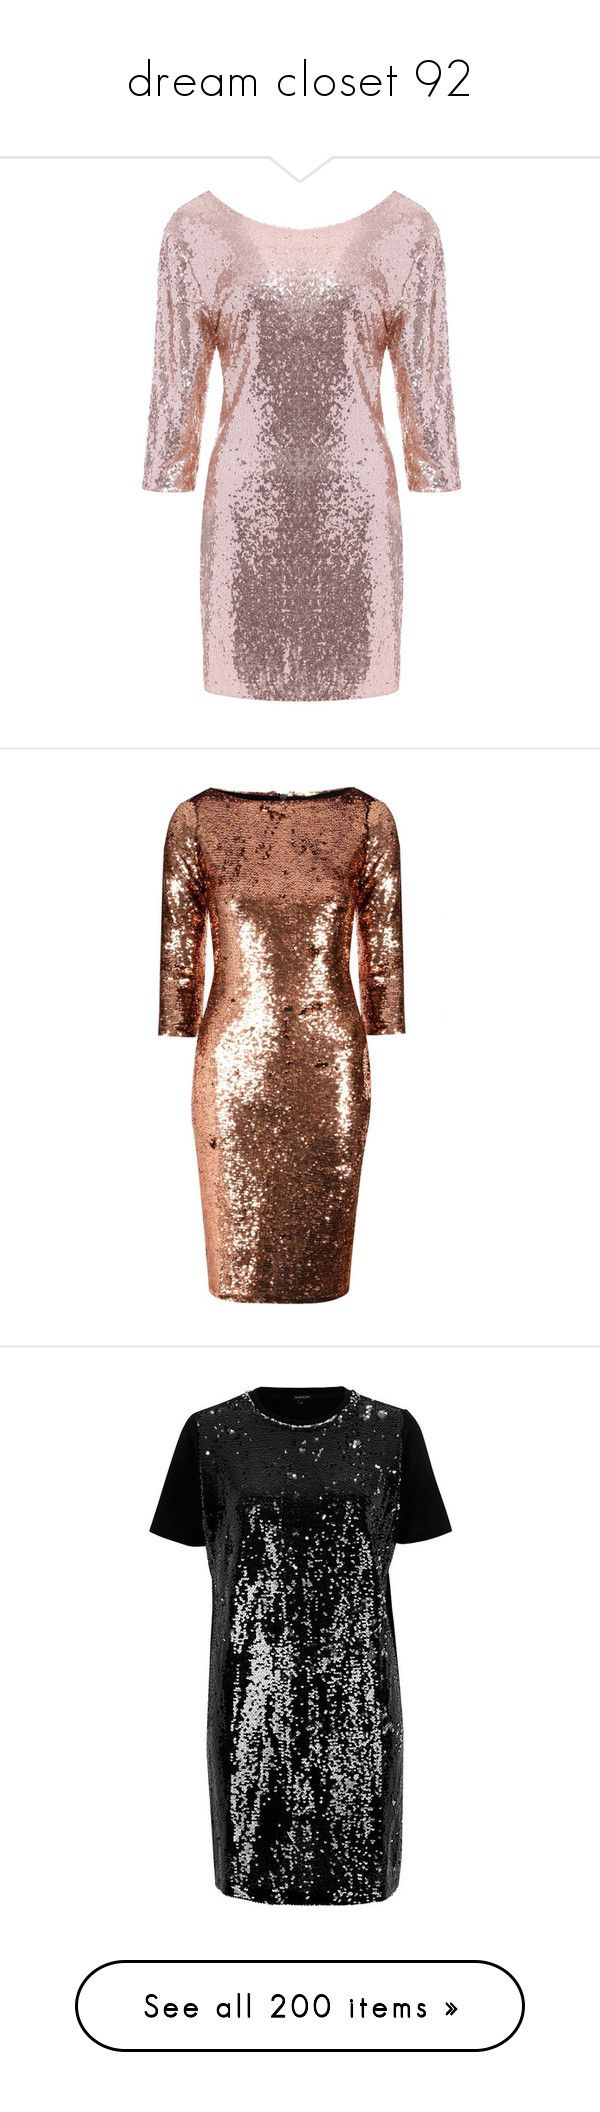 """dream closet 92"" by mrsromangodfrey ❤ liked on Polyvore featuring dresses, slim fit dress, sequin cocktail dresses, sequin dress, slimming dresses, backless cocktail dresses, metallic, copper sequin dress, copper cocktail dress and brown sequin dress"